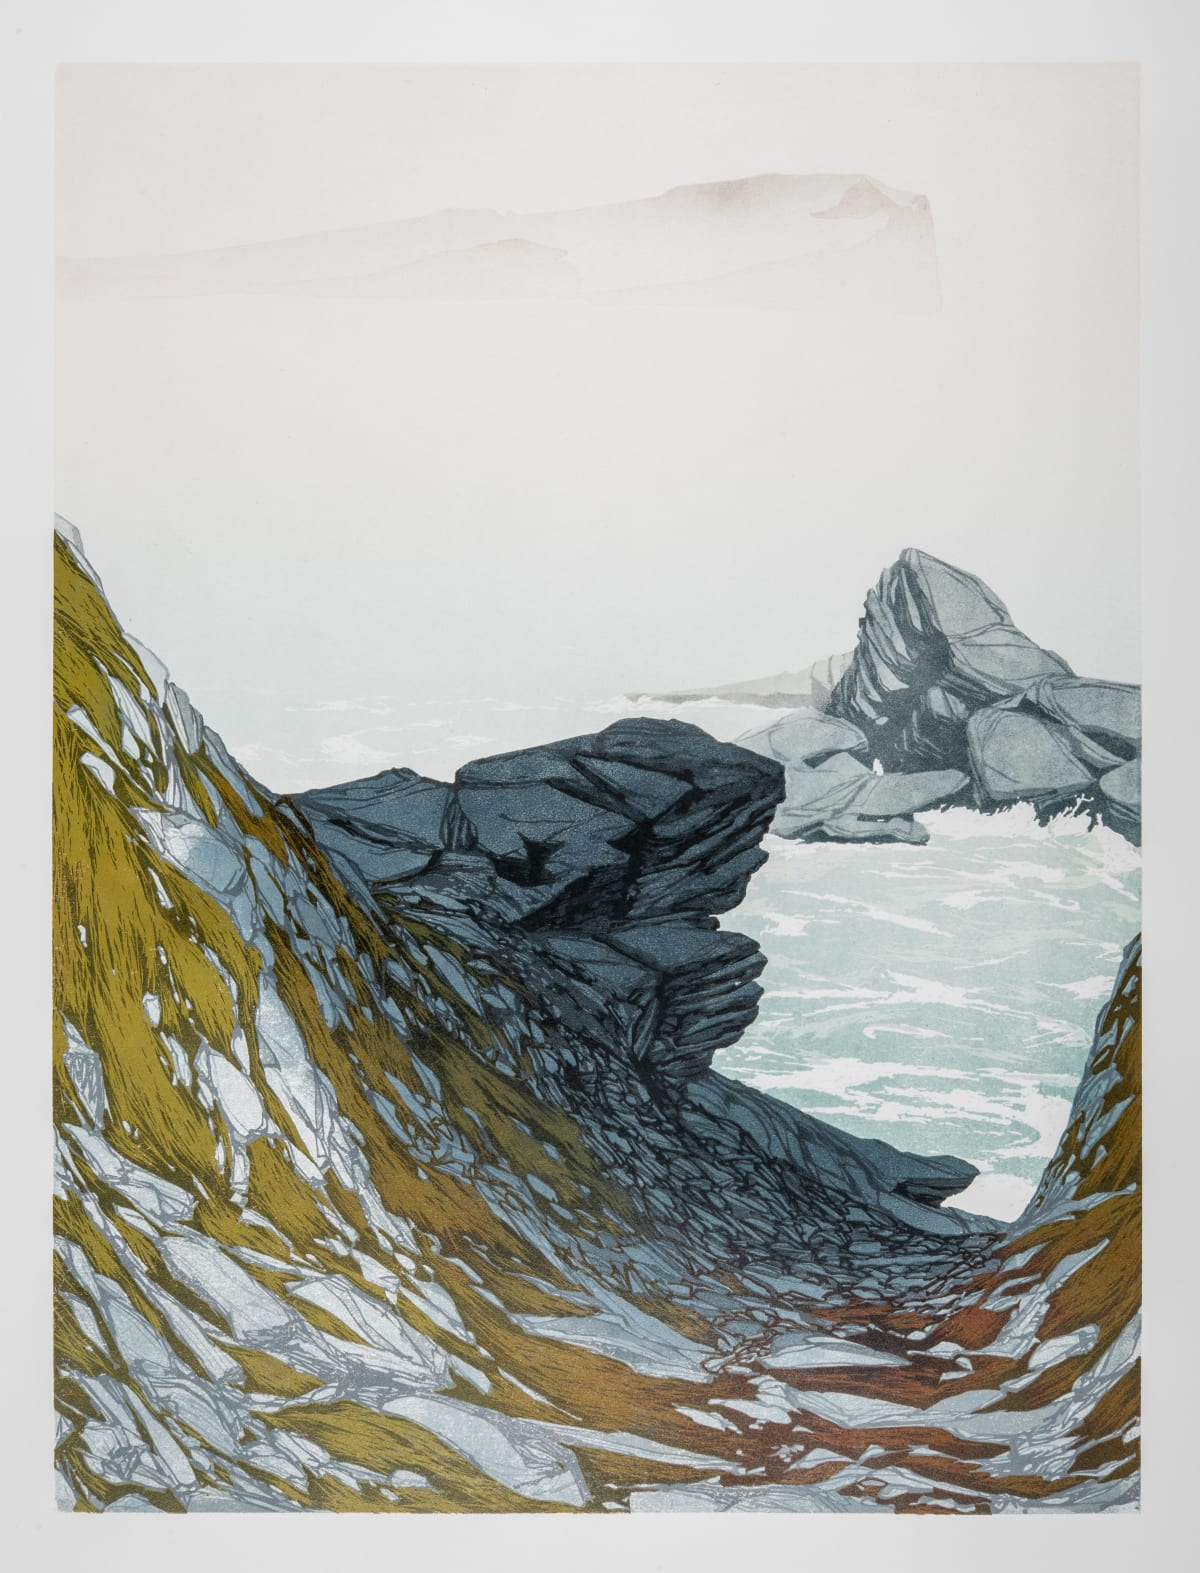 Laura Boswell Skye Sea Mist, 2019 Linocut 44 x 59 x 3 cm 17 3/8 x 23 1/4 x 1 1/8 in Edition 1 of 16